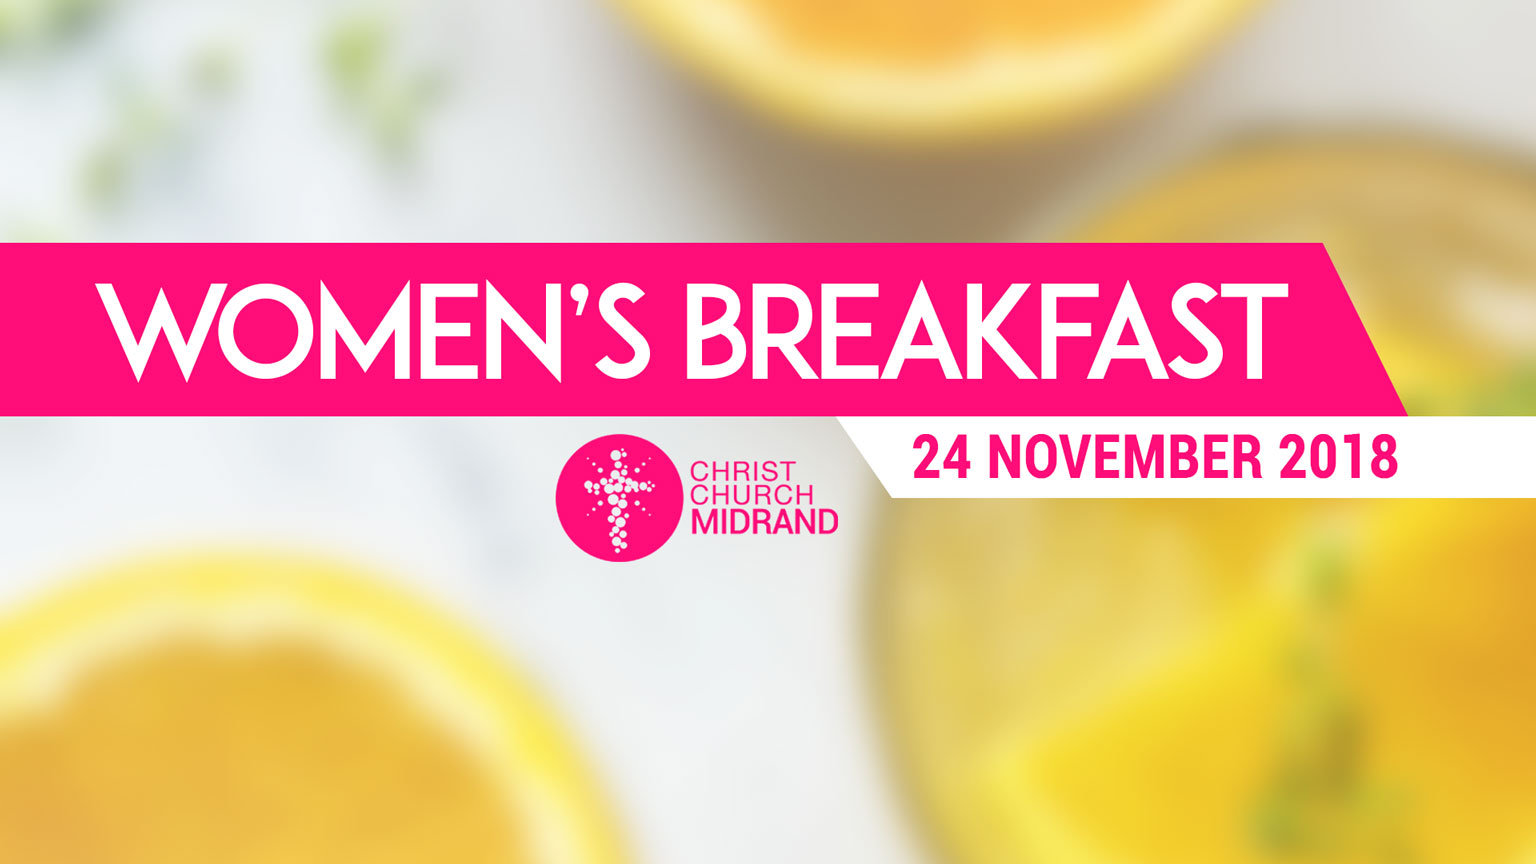 Women's Breakfast November 2018 Rosie Moore